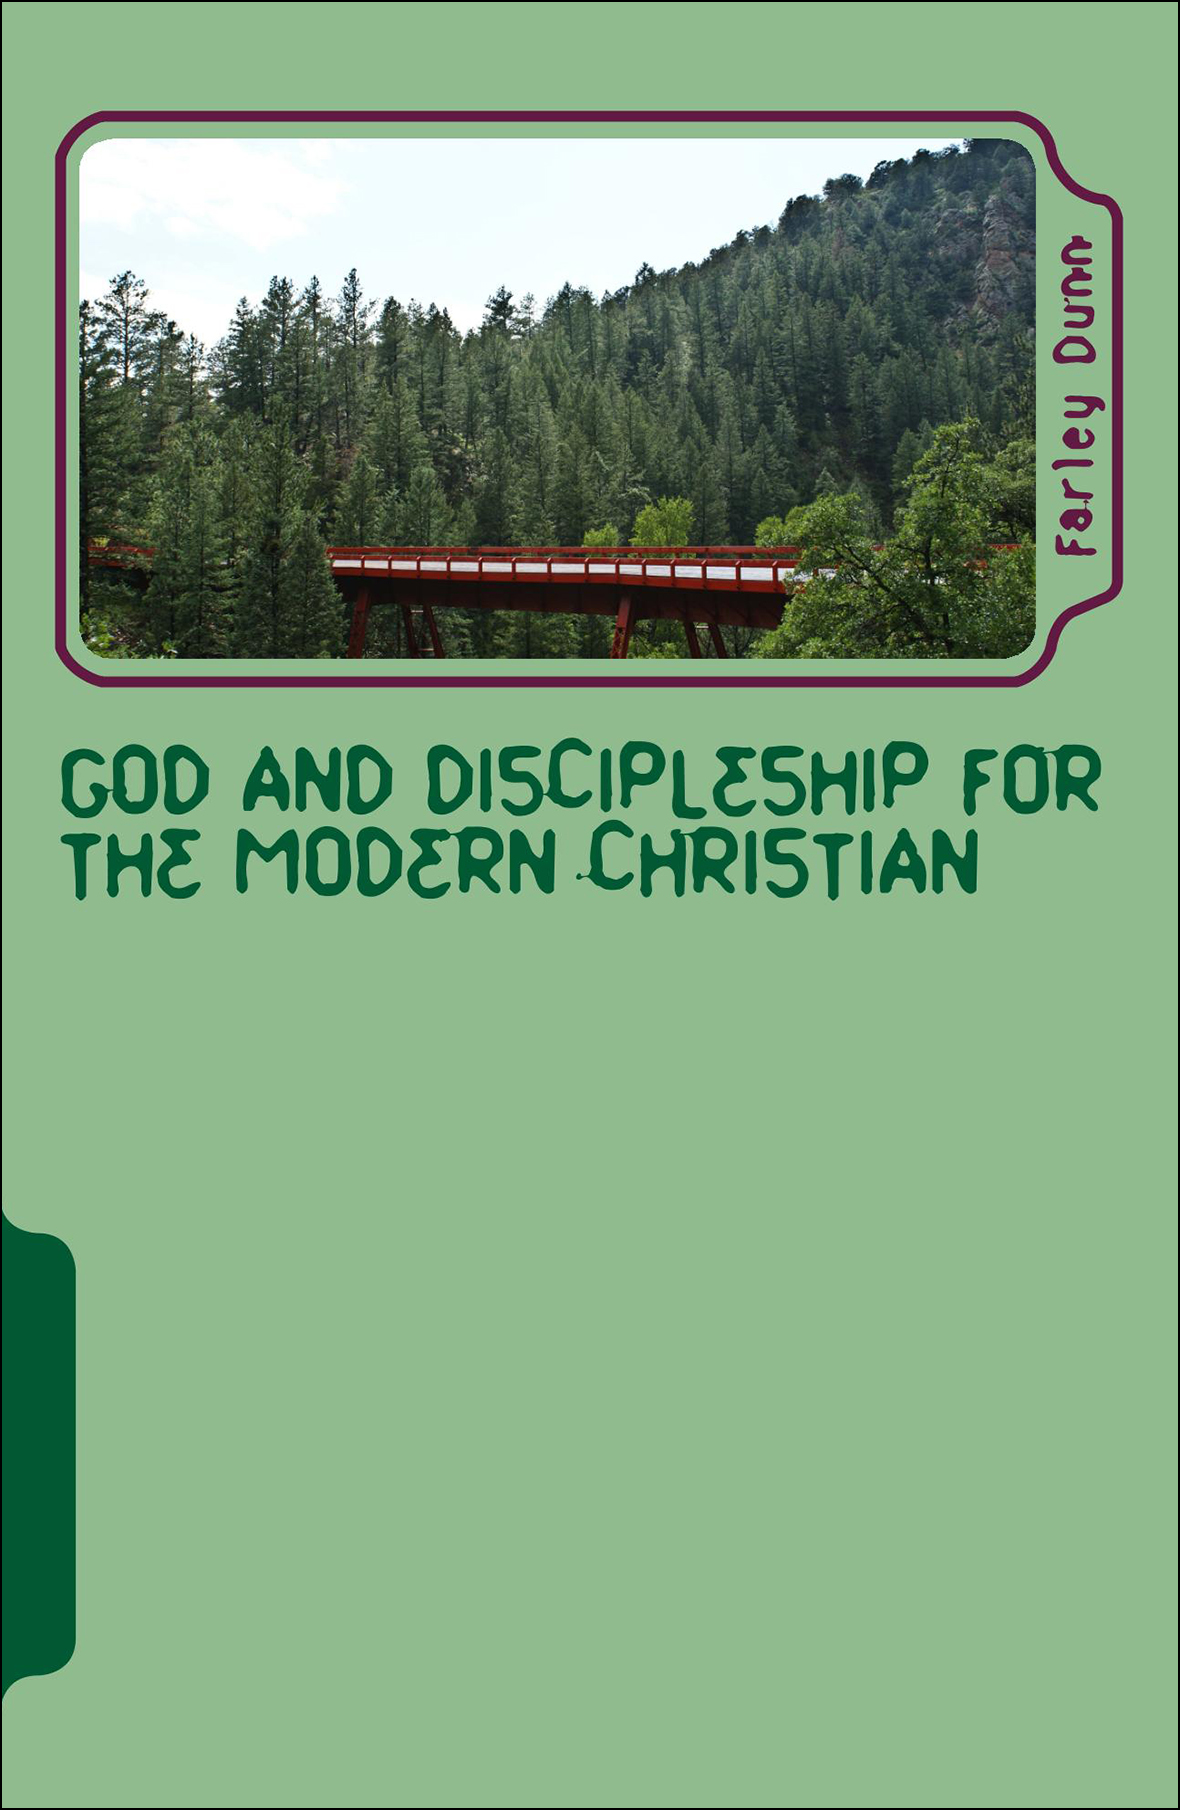 God and Discipleship Cover for Web Insertion Vol 3